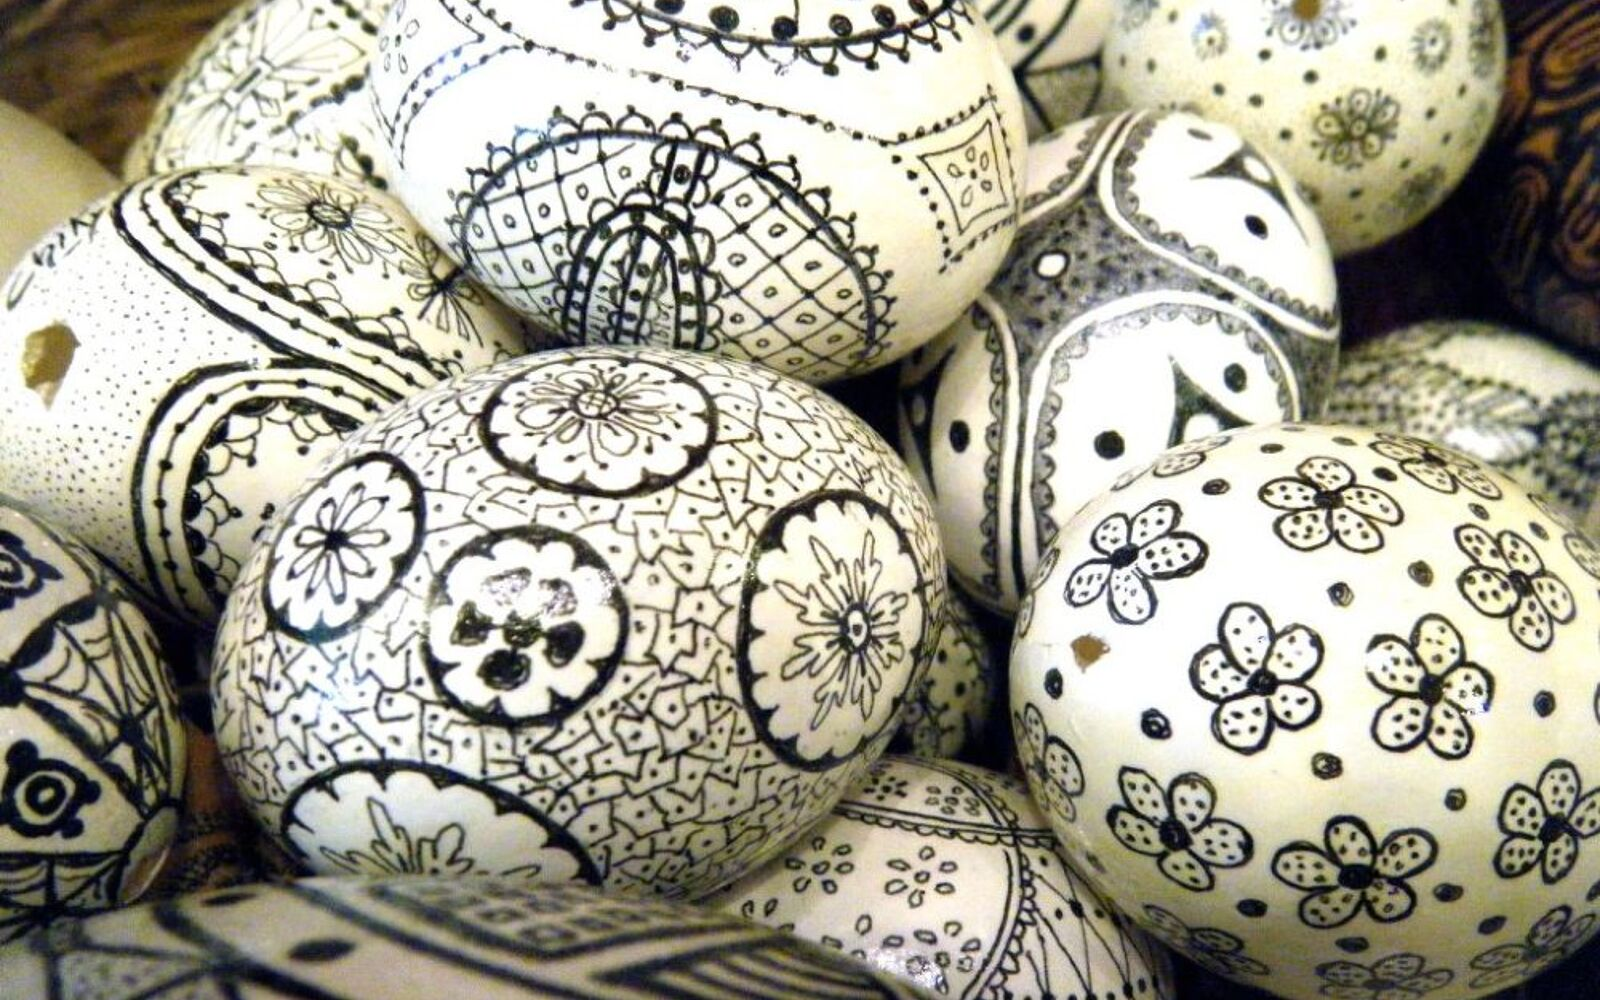 s 23 totally different ways to decorate real eggs this easter, crafts, easter decorations, Go for a bold black white look with Sharpie